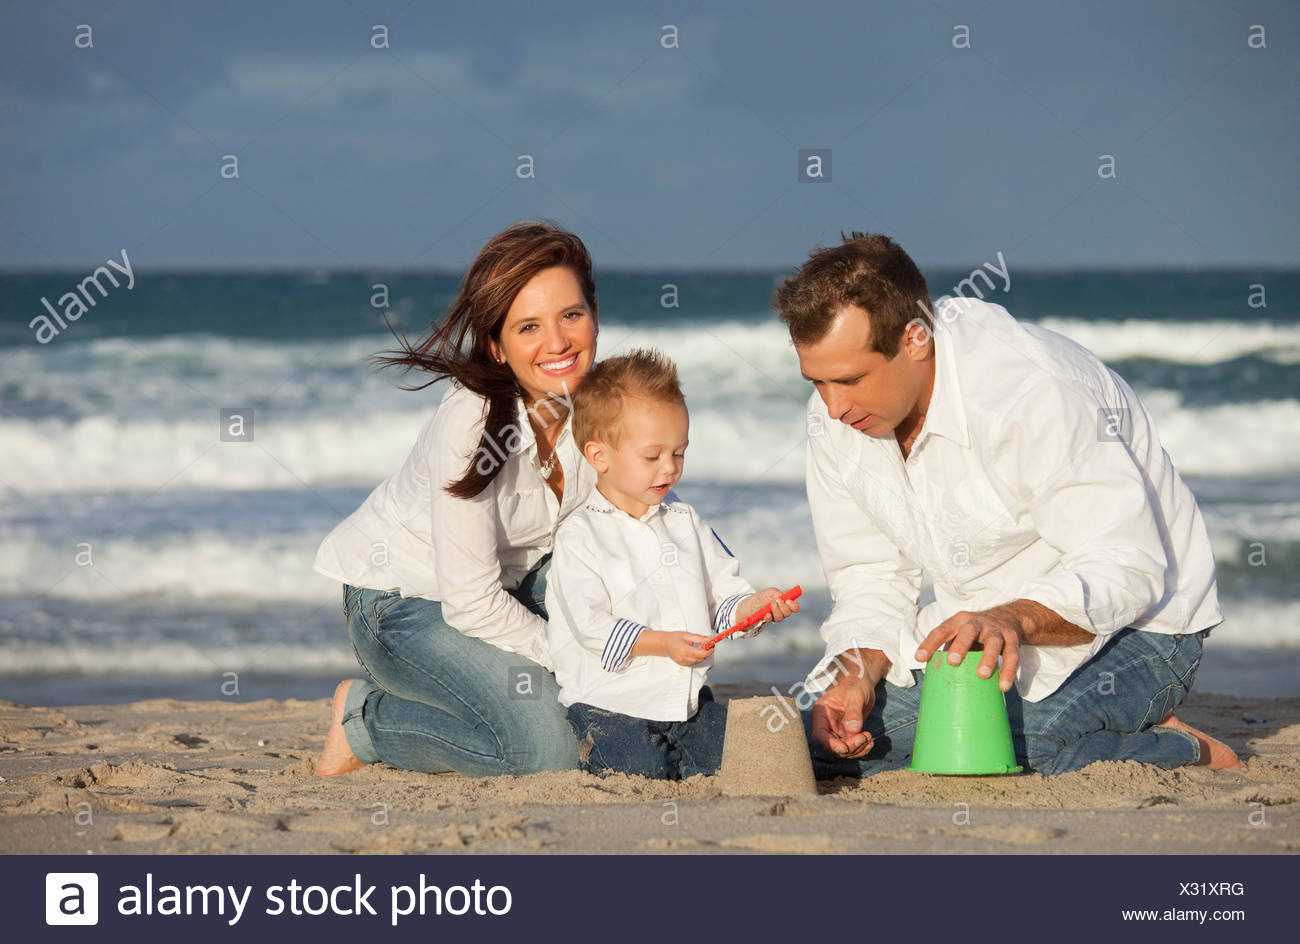 Fort Lauderdale, Florida, United States Of America; A Family Playing In The Sand On The Beach Stock Photo